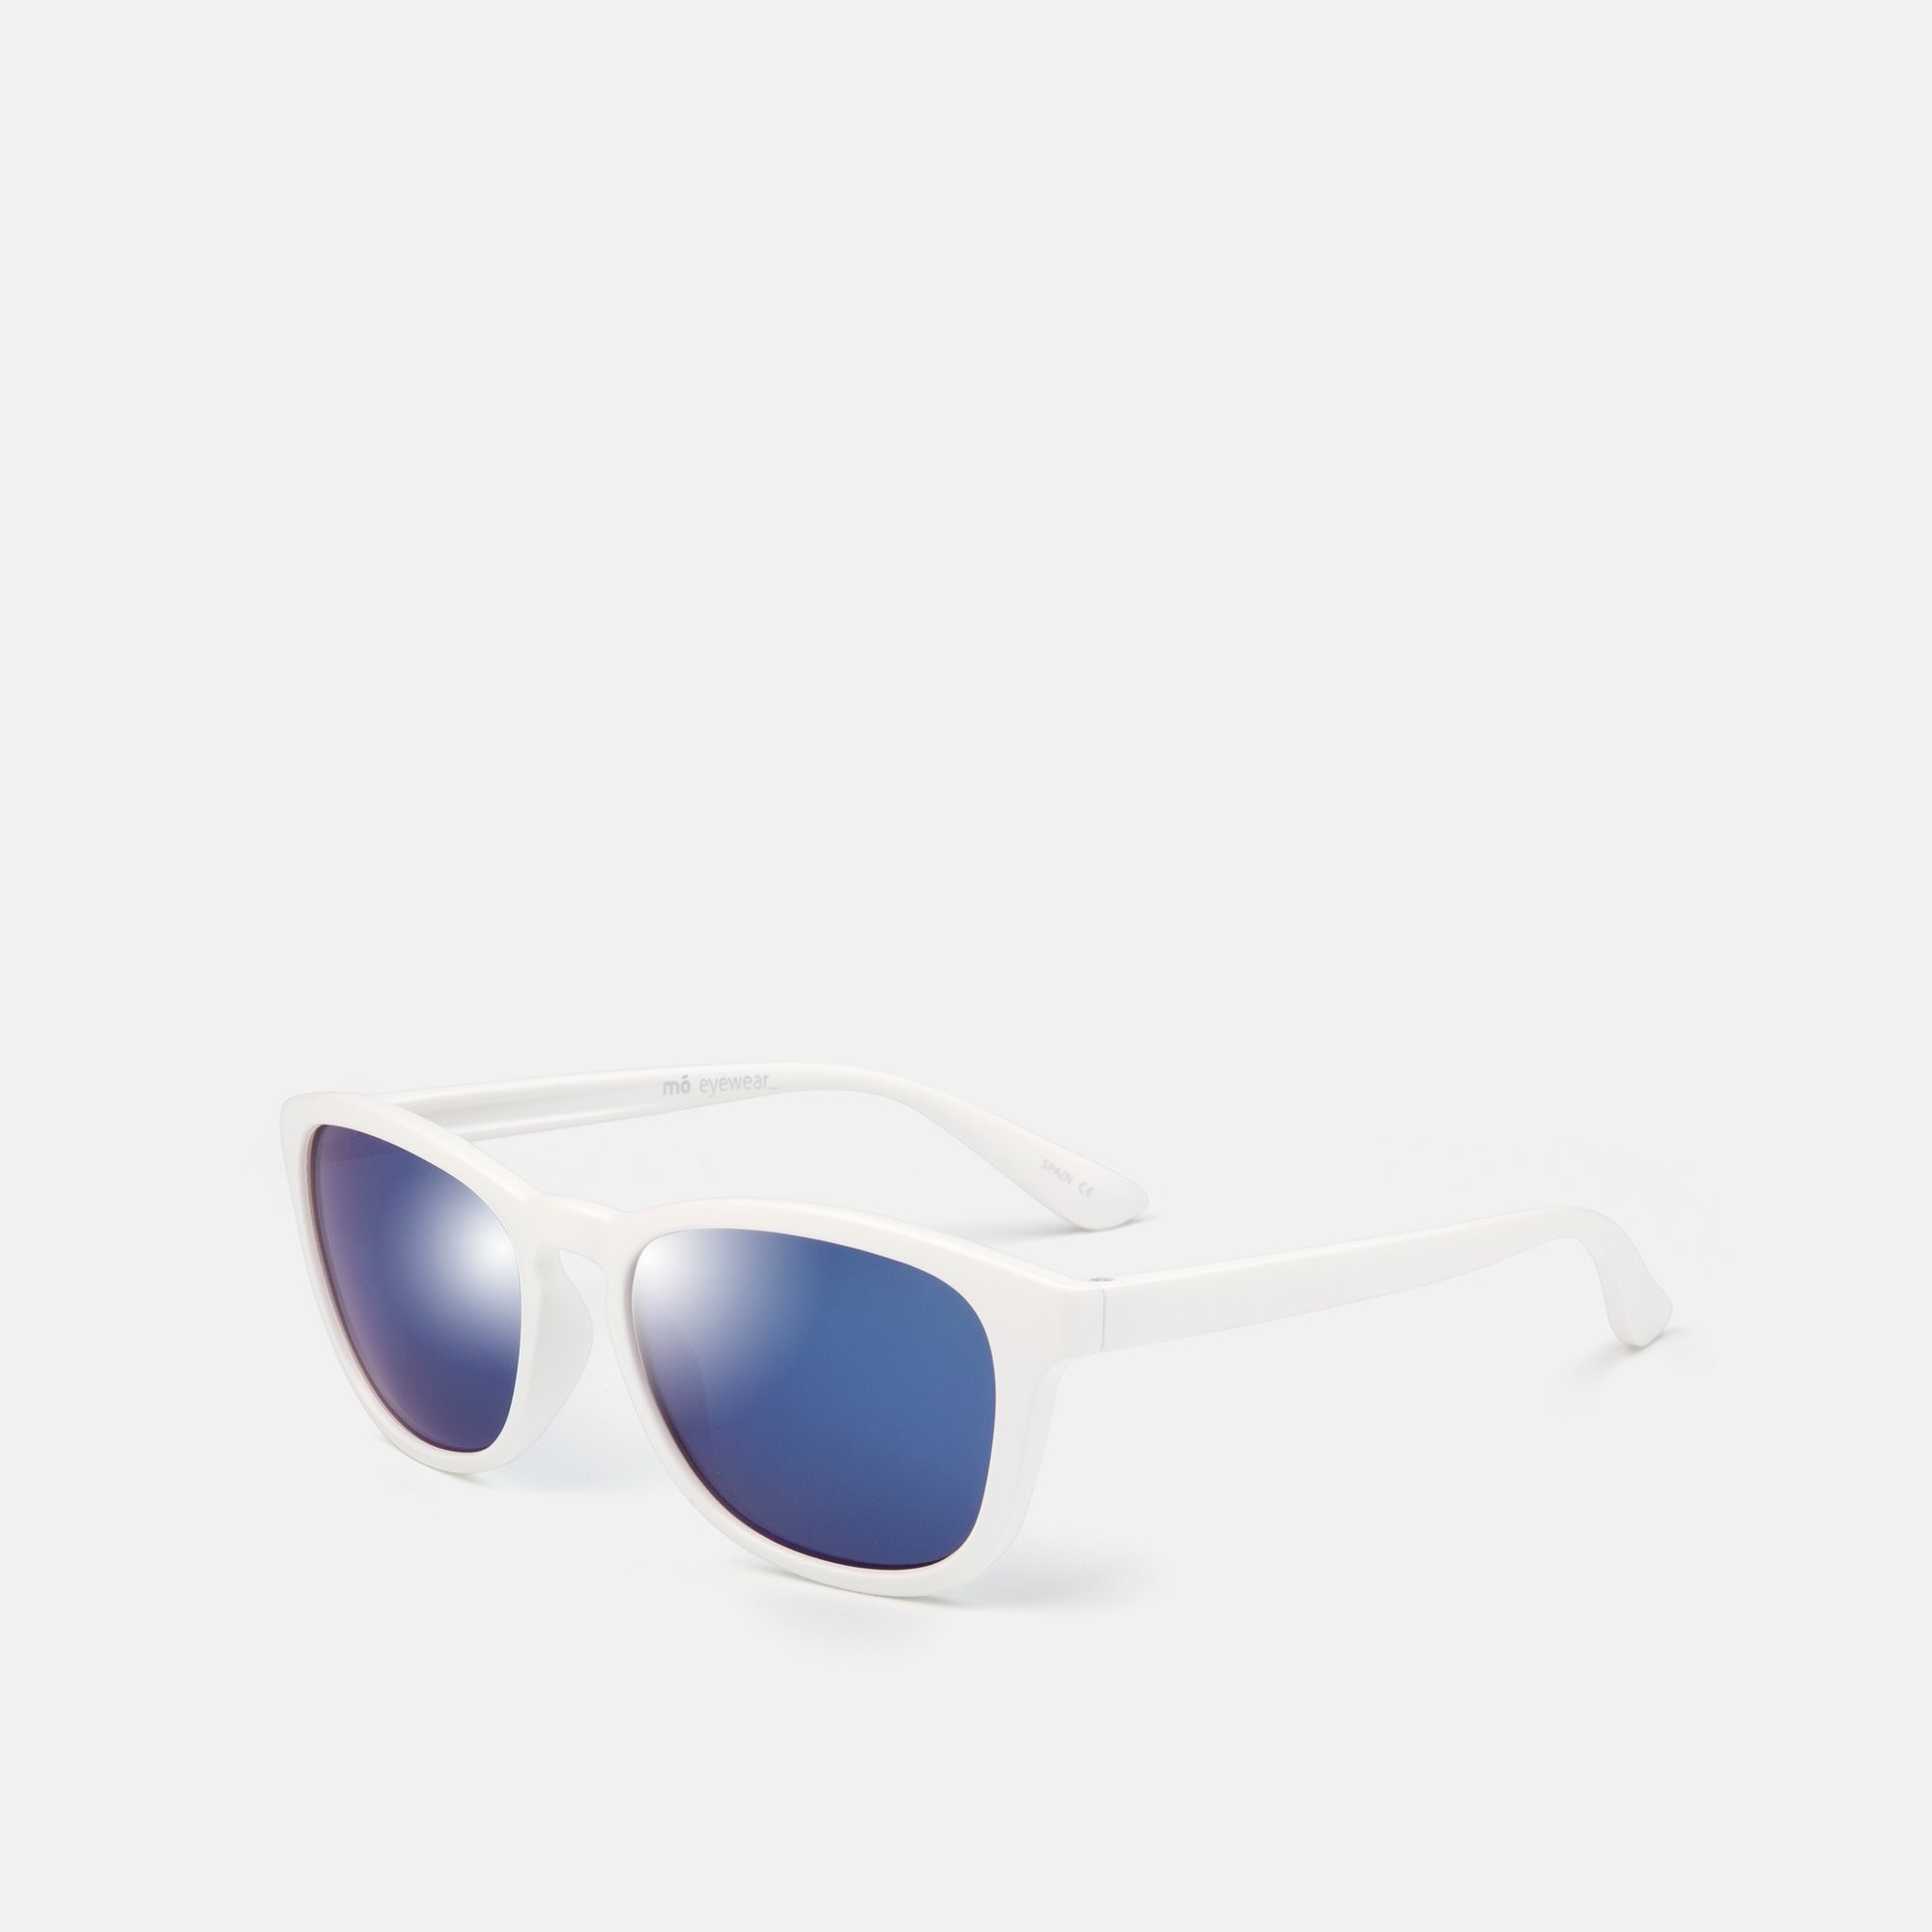 mó sun kids 77I B, white/blue, hi-res